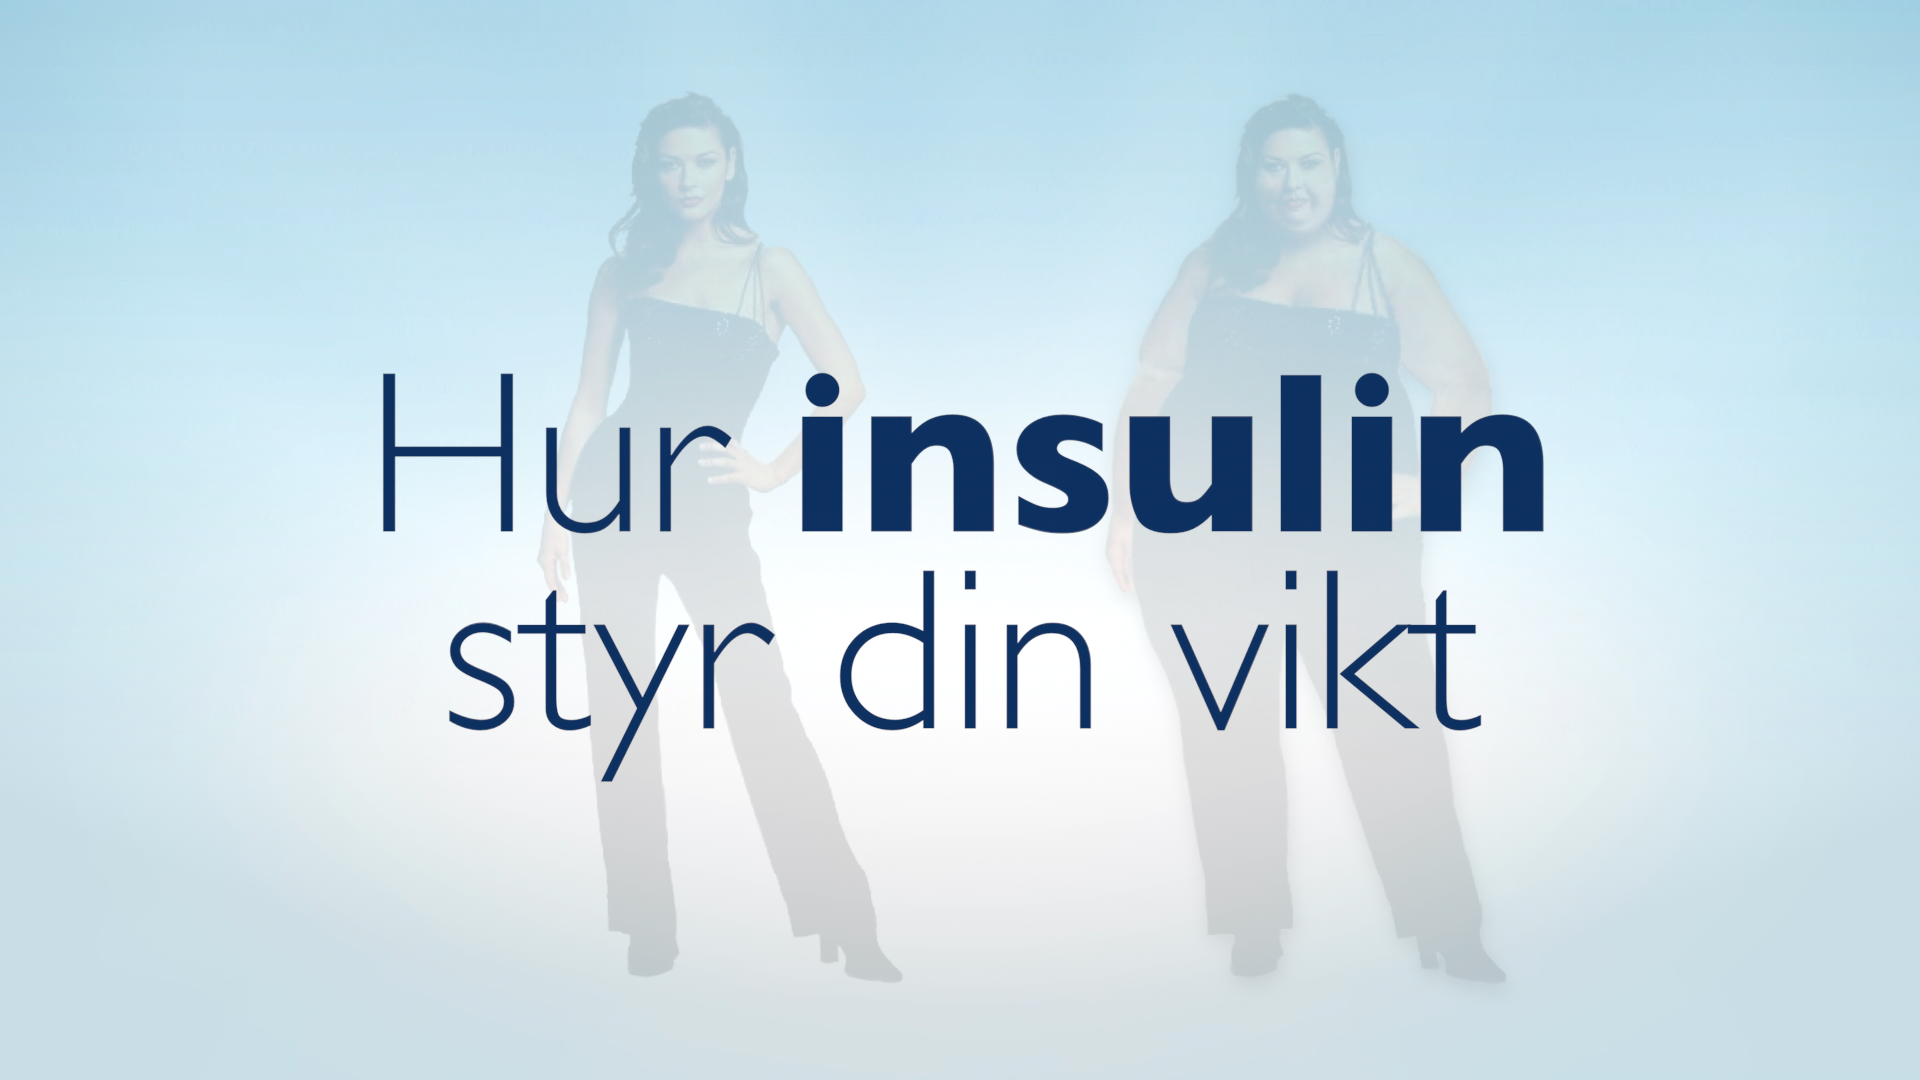 Video - Hur insulin styr din vikt3